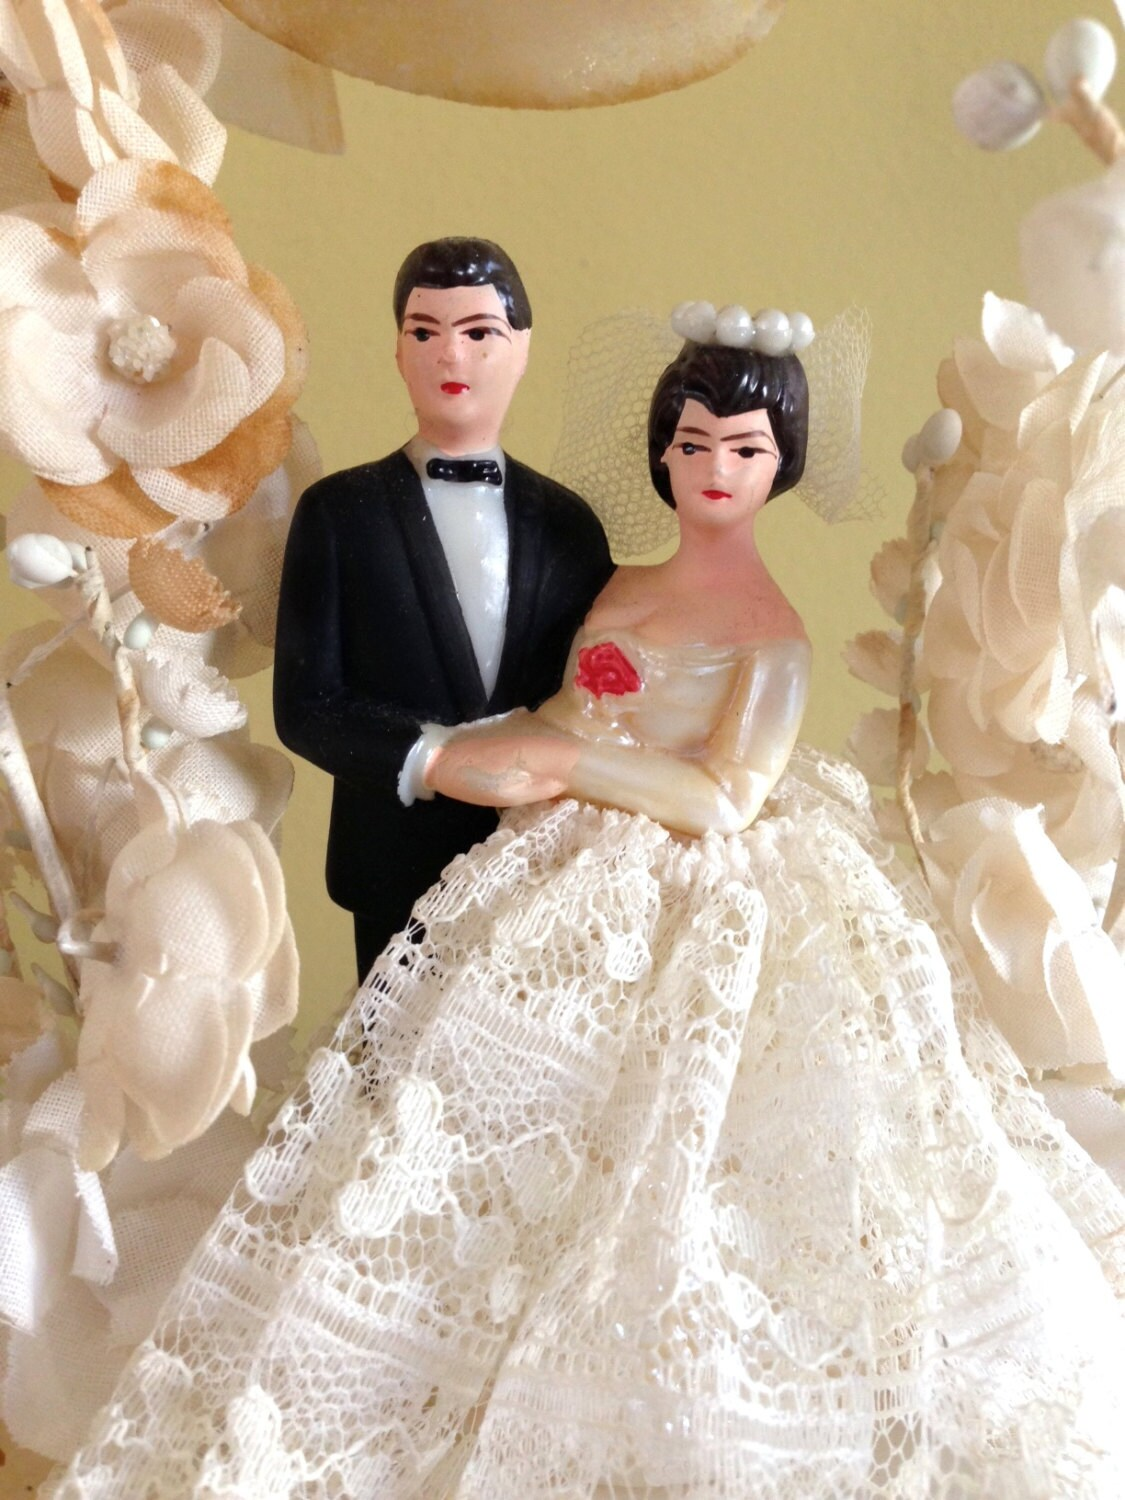 Vintage Wedding Cake Topper Vintage Bride and Groom Vintage